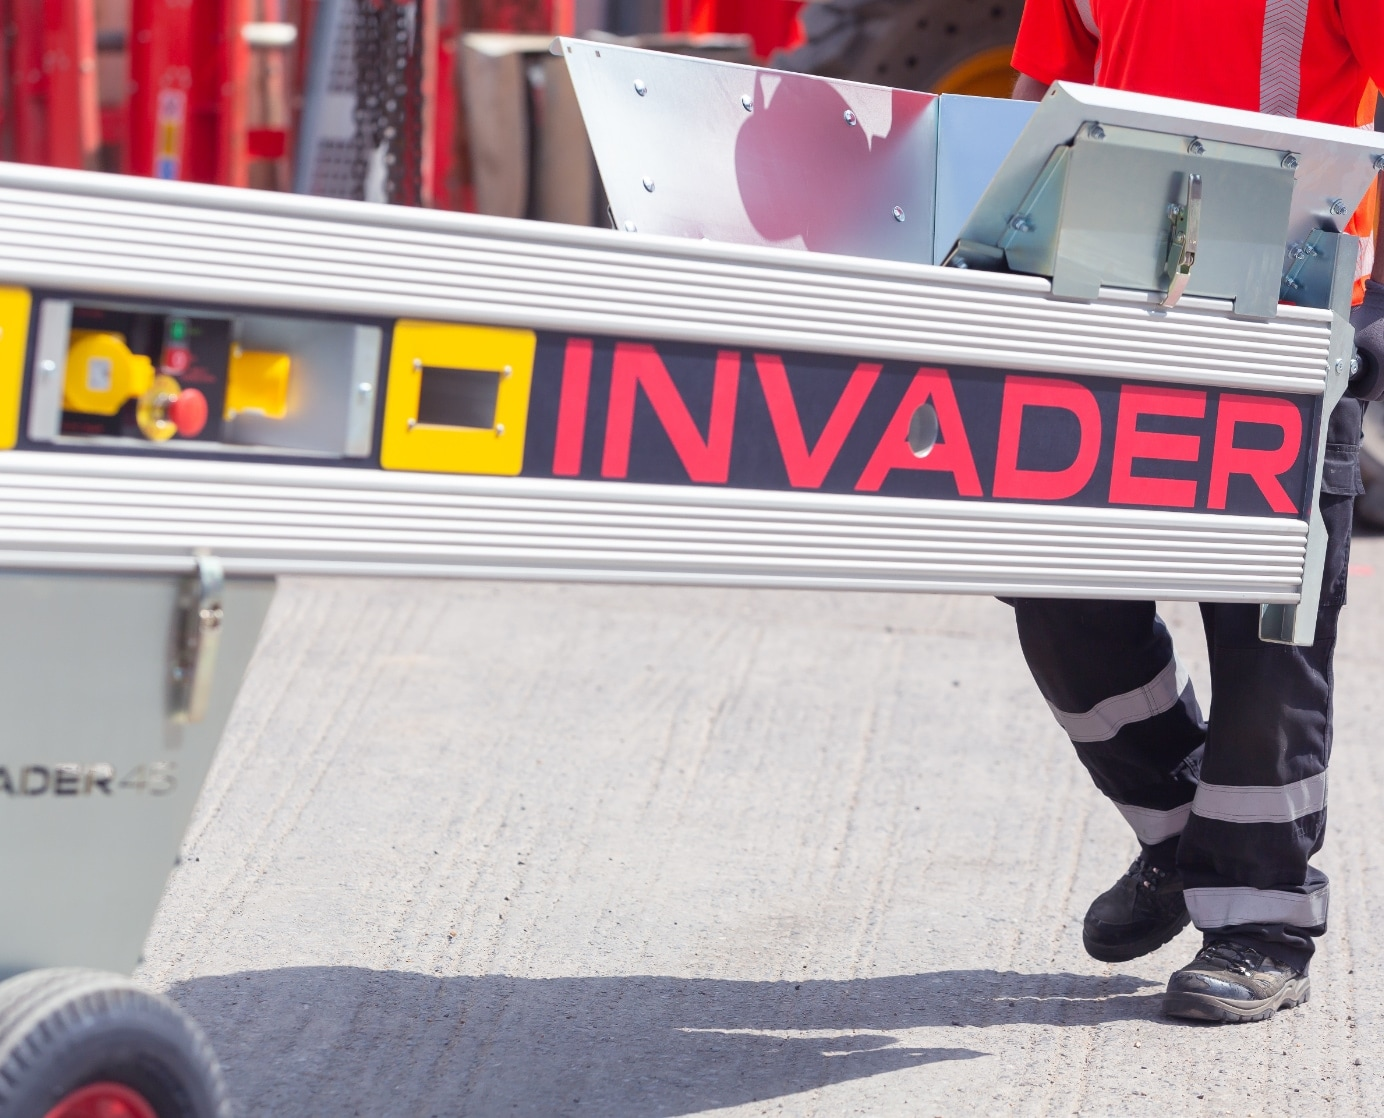 How to use a conveyor safely: 10 things every operative should know